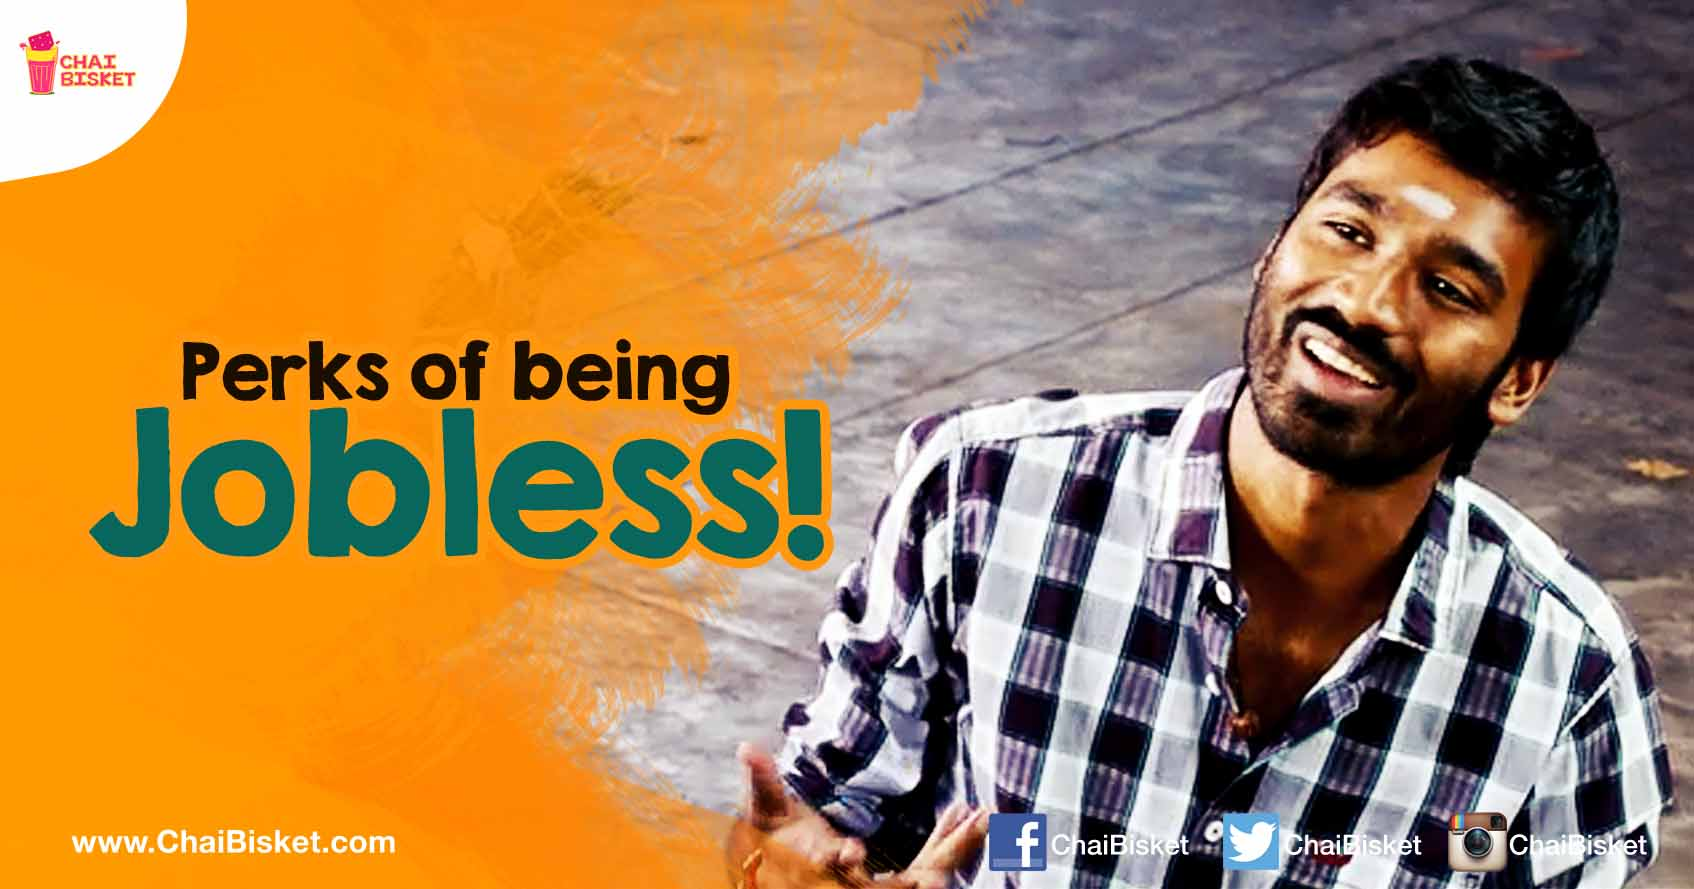 biskets chai bisket 8 perks that people who are struggling to a job will enjoy